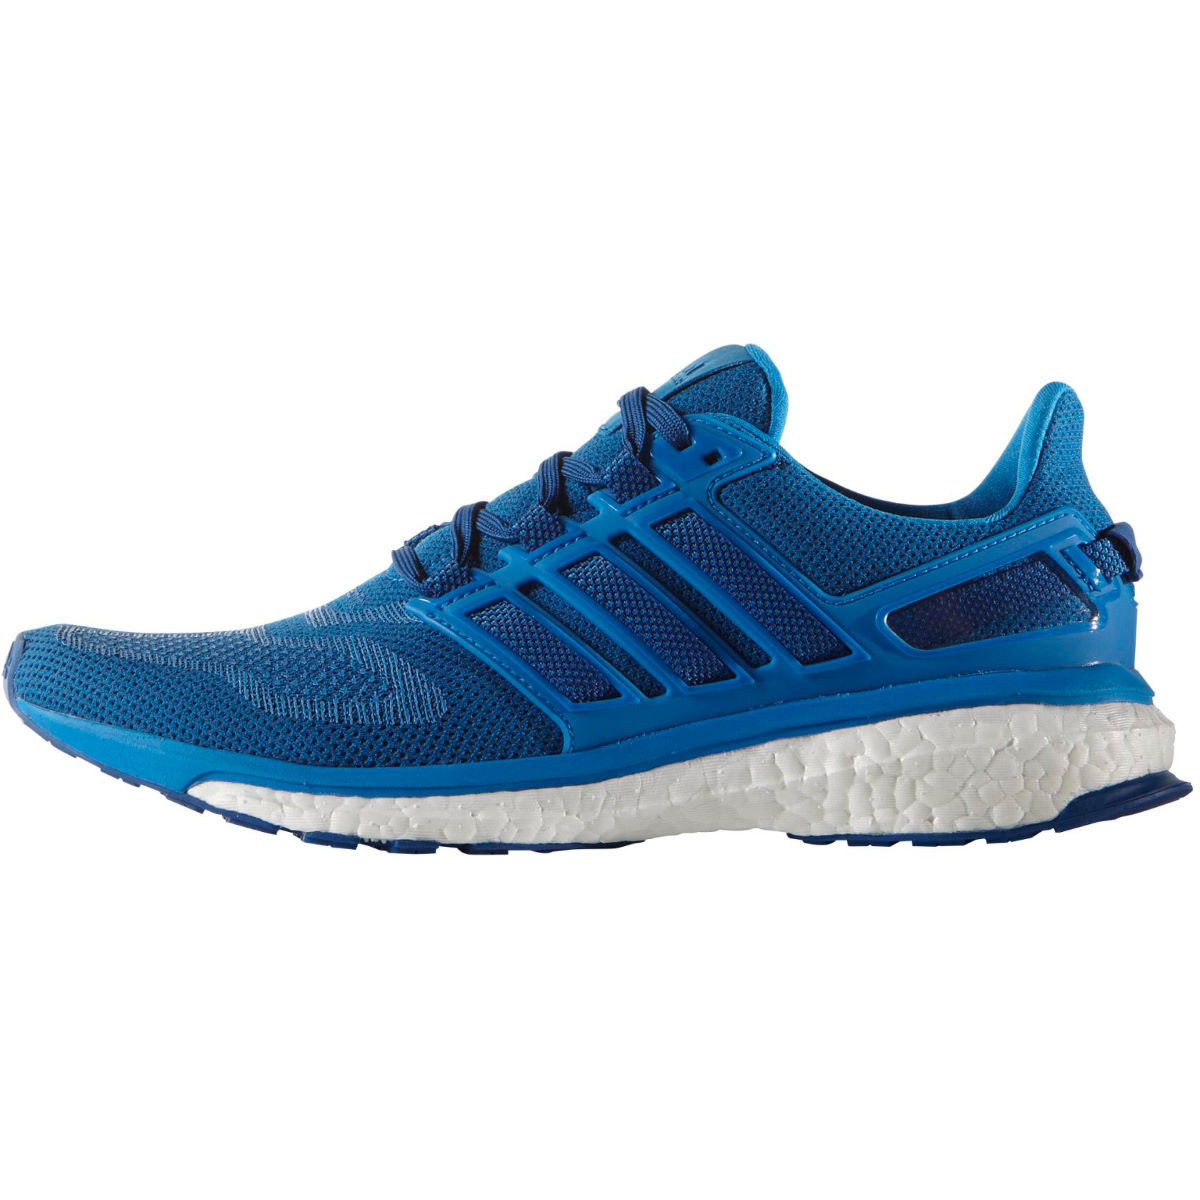 Chaussures Adidas Energy Boost 3 (PE16) - 11,5 UK Blue/Blue Chaussures de running amorties